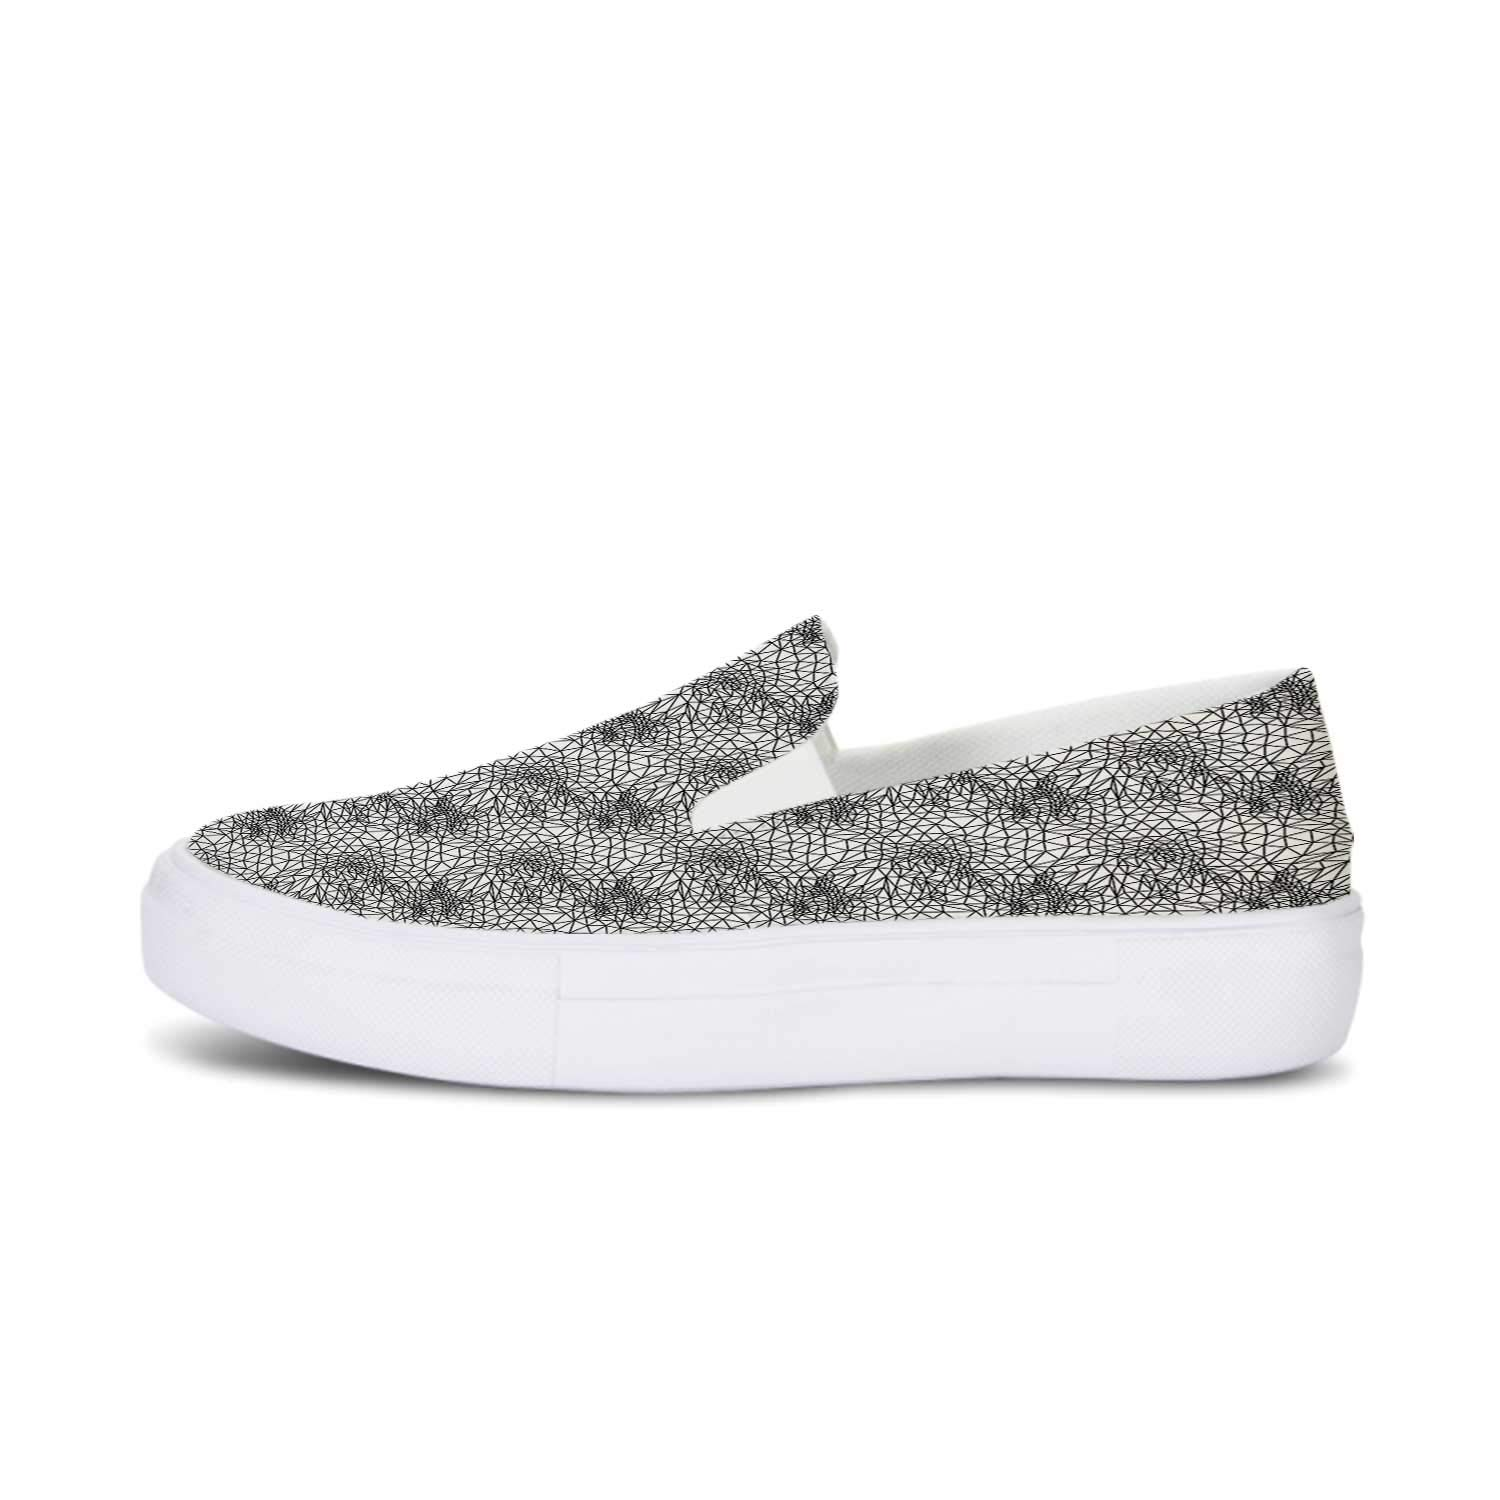 Abstract Canvas Slip On Shoes,Monochrome Triangle Pattern Polygonal Design Connected Stripes Ornate Line Art Decorative for Women,US 5